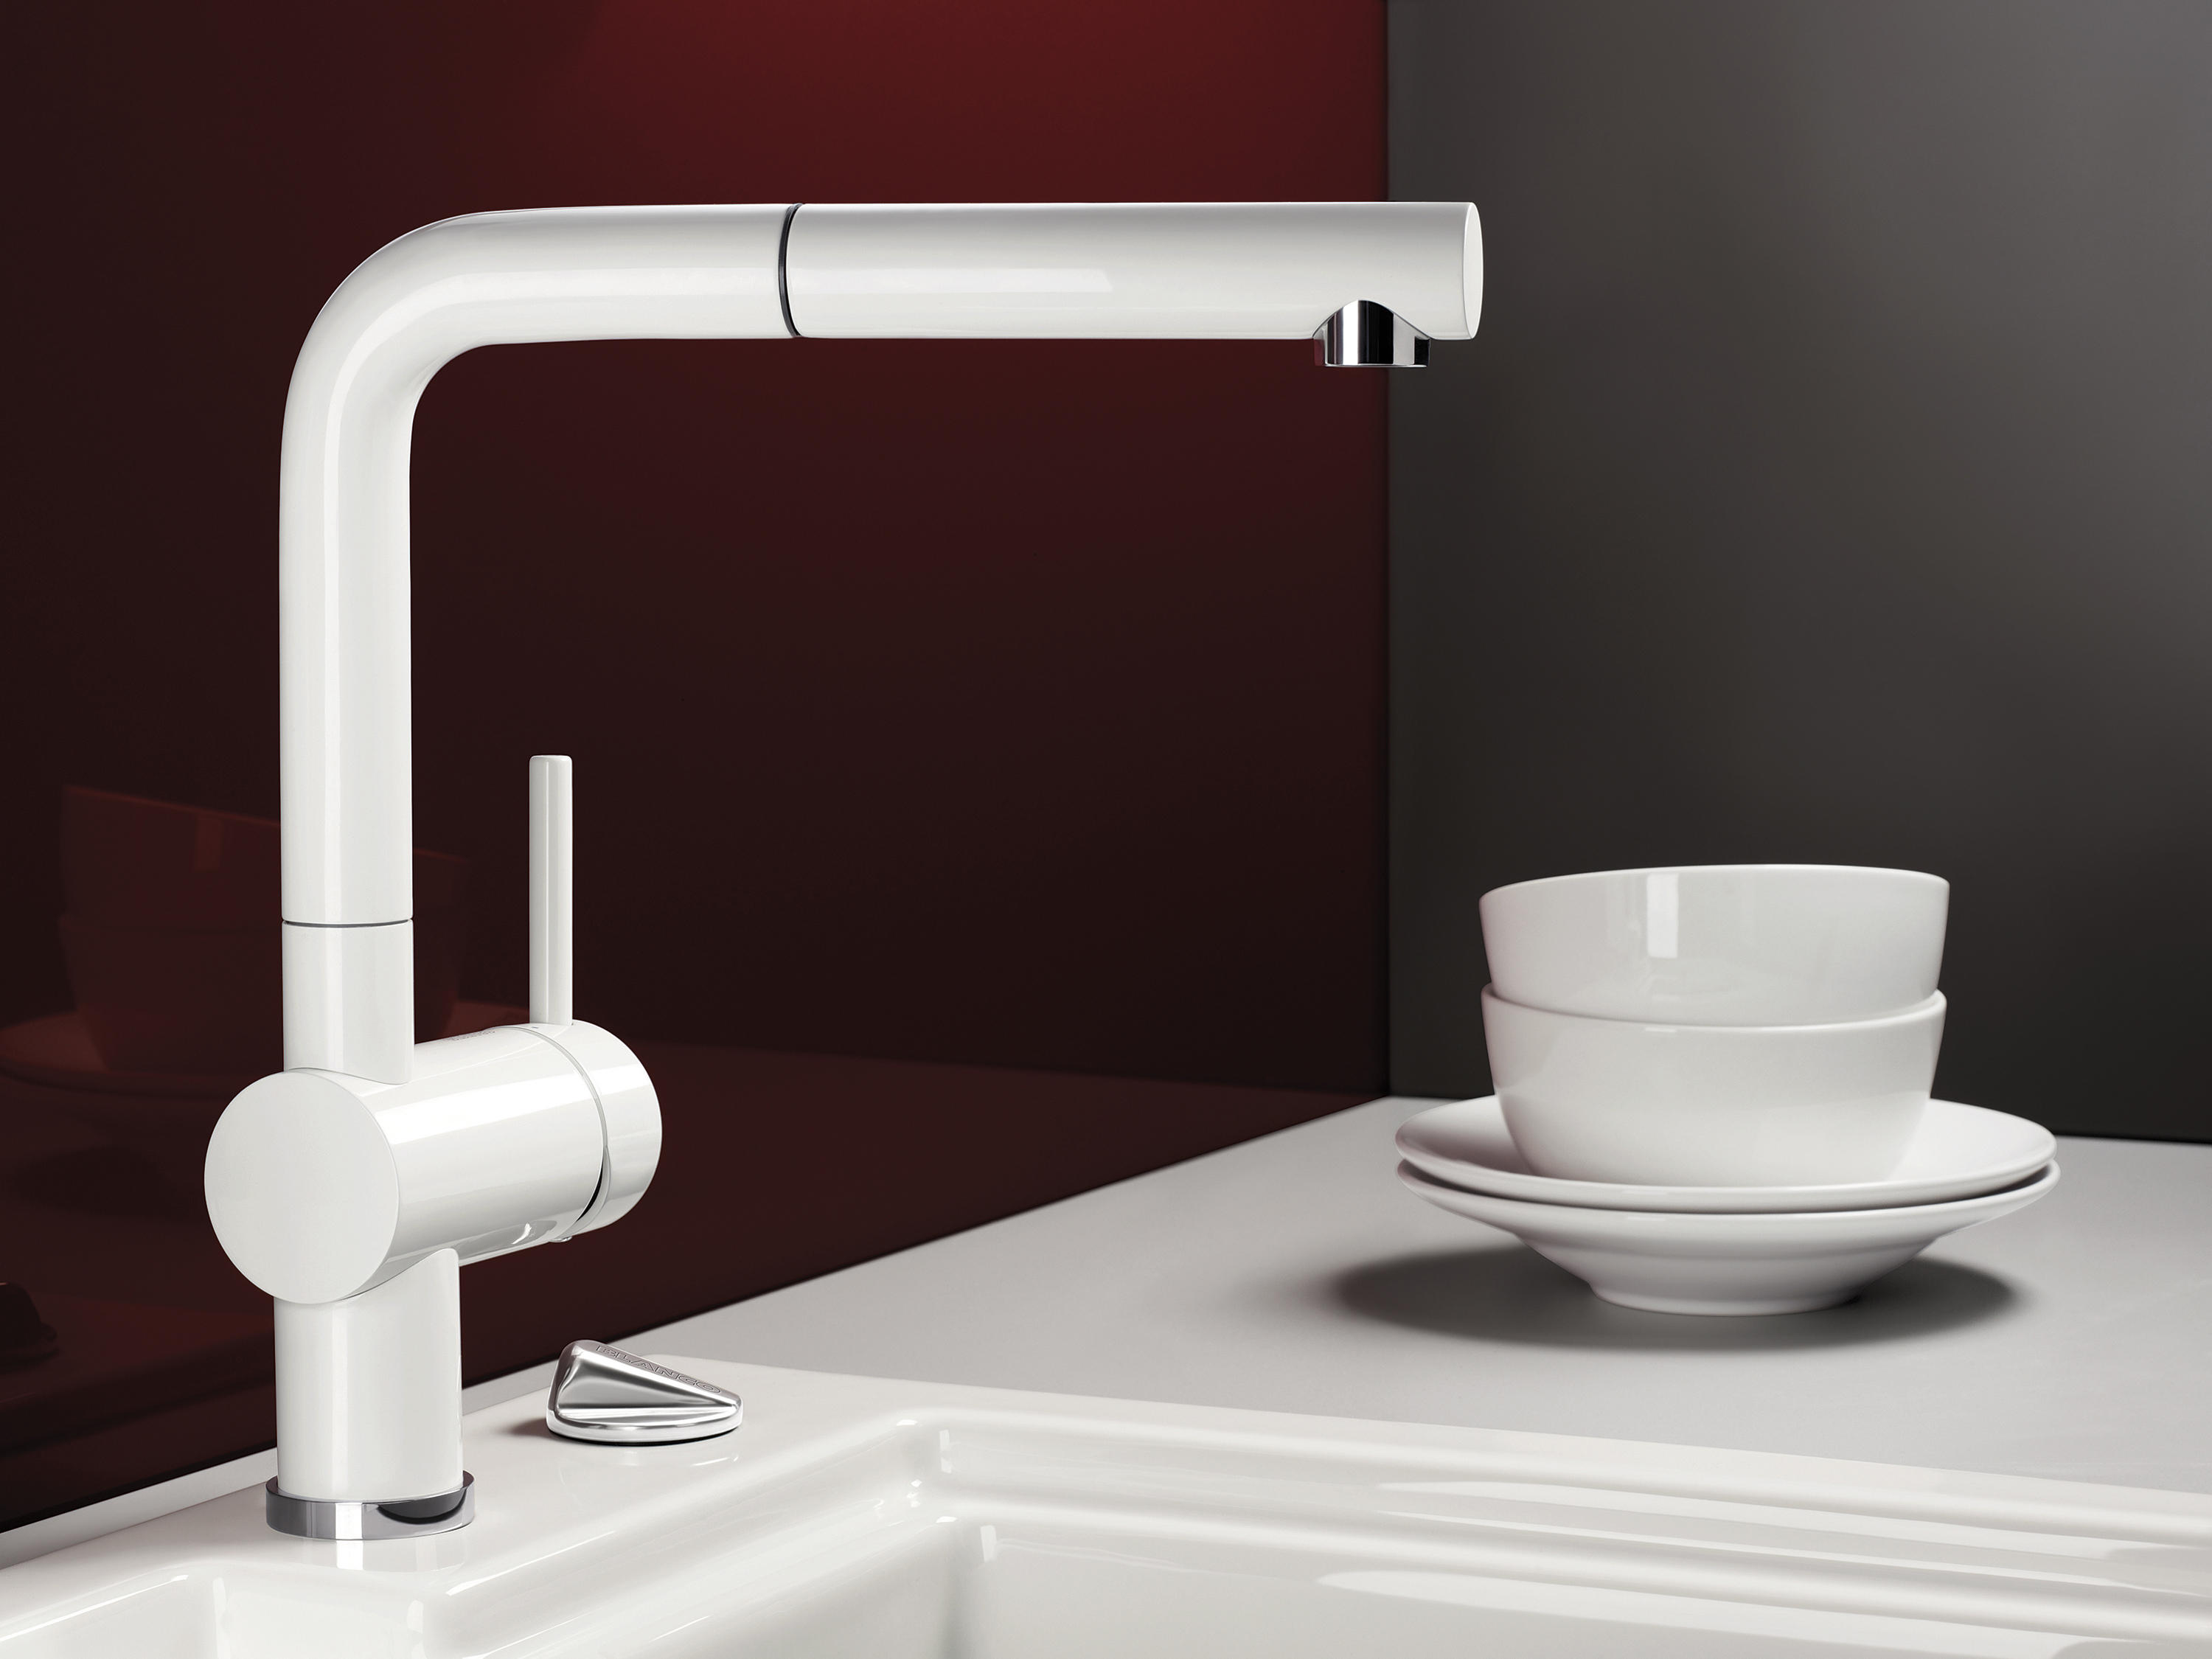 faucets x design sink cinder single size moen elkay discount steel usa allora handmade ii double bowl undermount blanco splendid kohler silgranit faucet deep website of ada bathroomsplendid kitchen gauge ikea full home granite reviews kh best sinks stainless